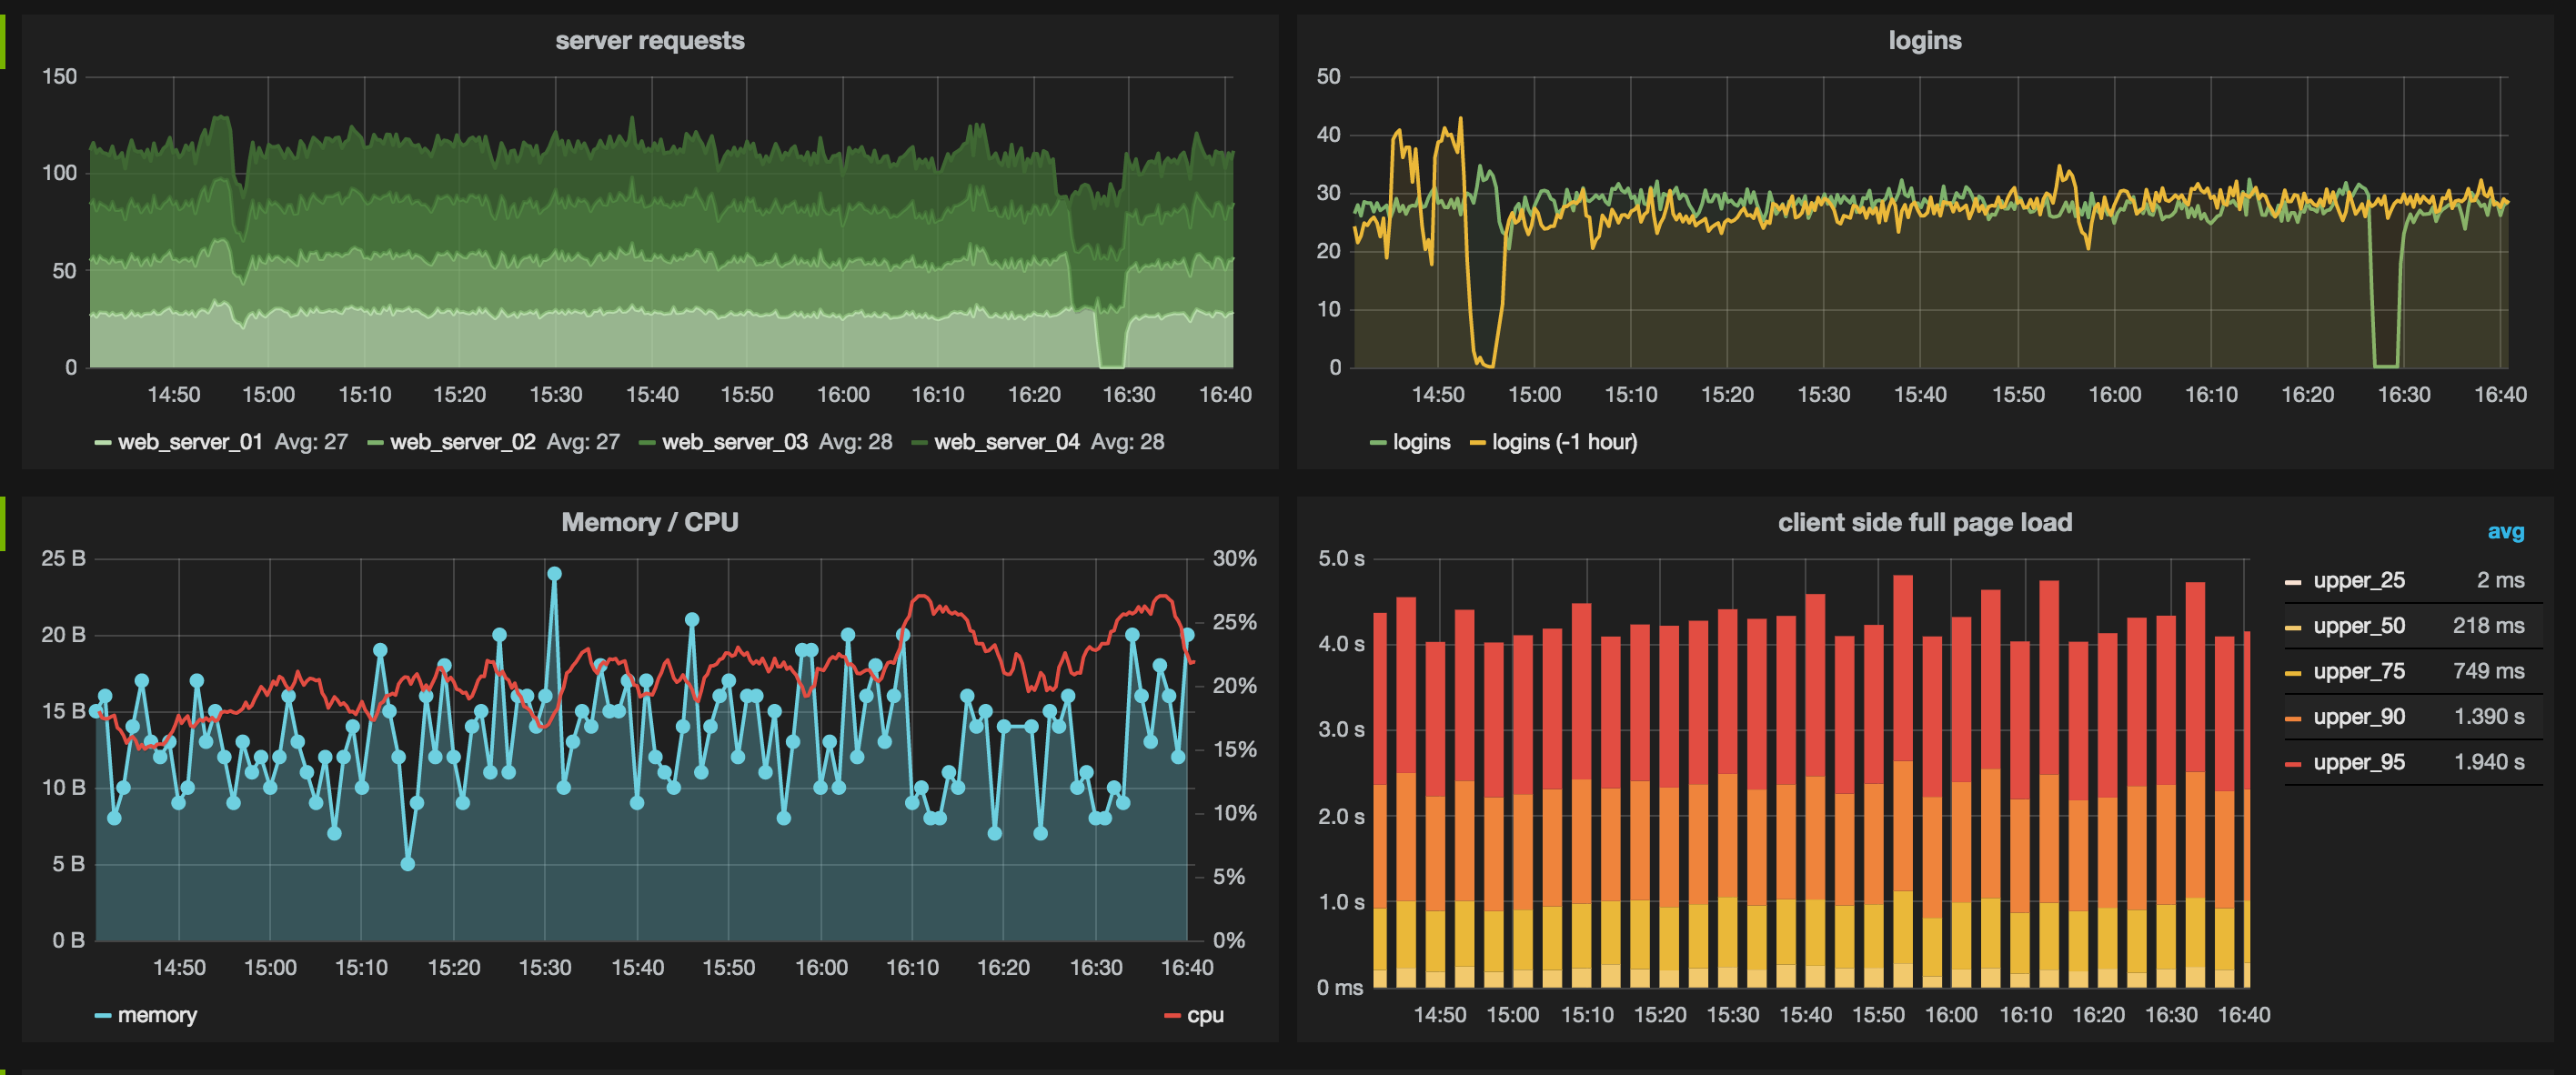 How to Build a MixPanel Clone with Docker, InfluxDB and